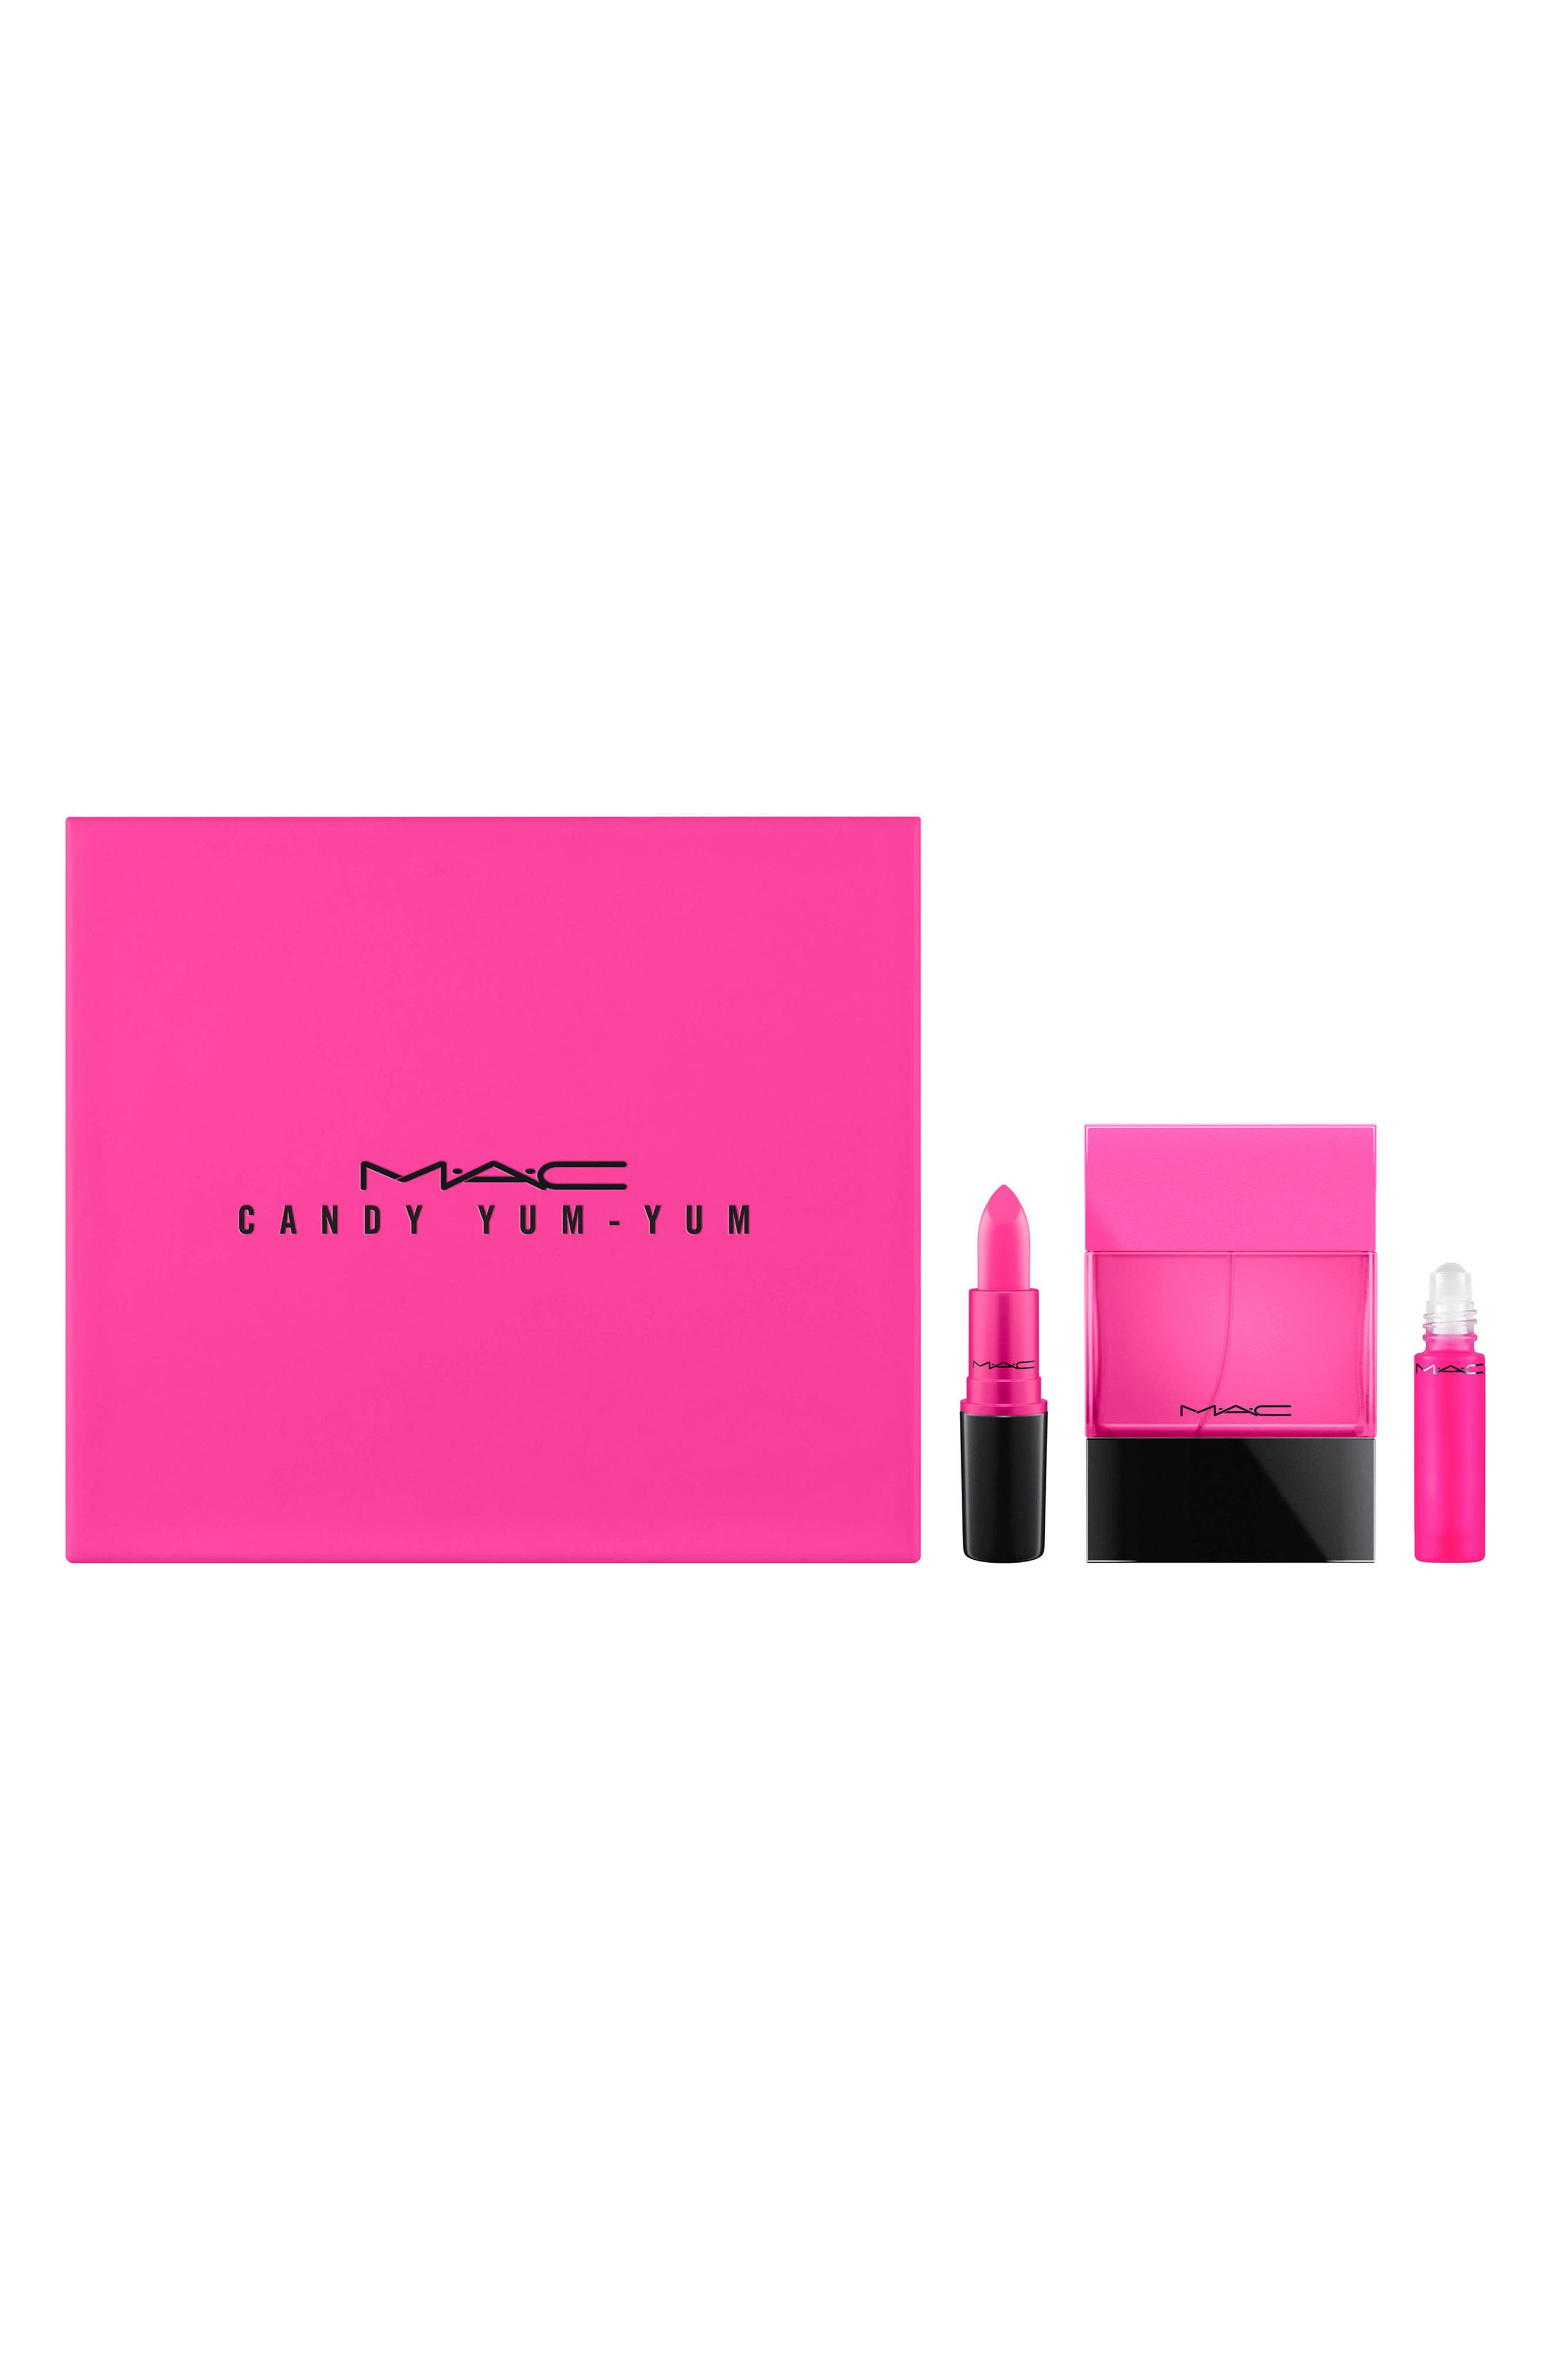 MAC Candy Yum-Yum Shadescents Kit ($85.50 Value)